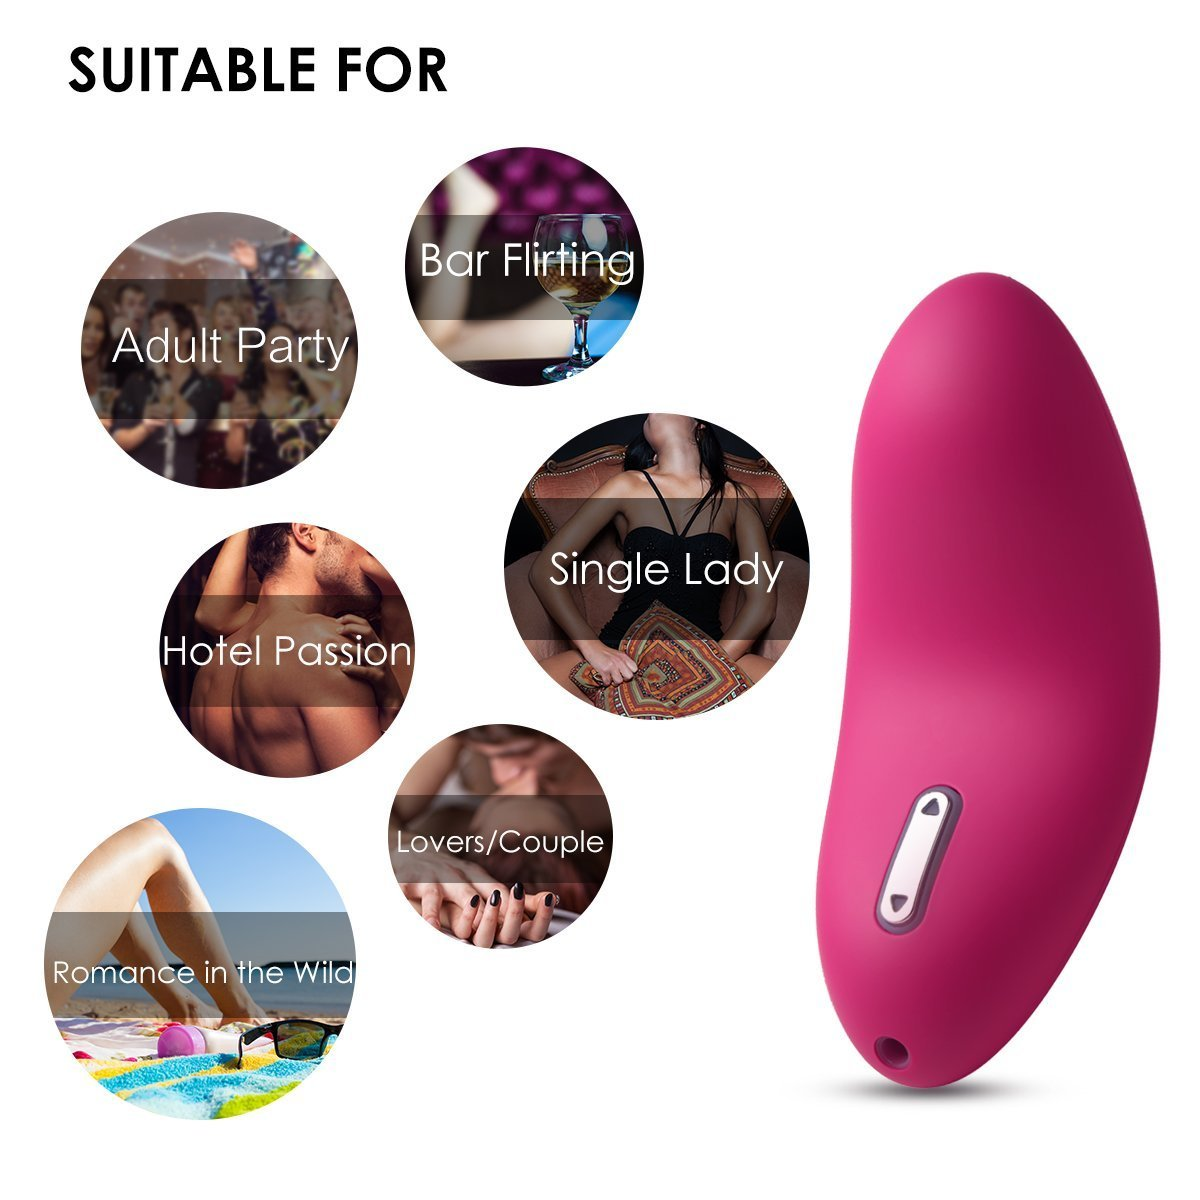 SVAKOM Echo Mini Powerful and Rechargeable Tongue Shape Design Vibrator Licked Feeling Electric Massagers (Red) by SVAKOM (Image #5)